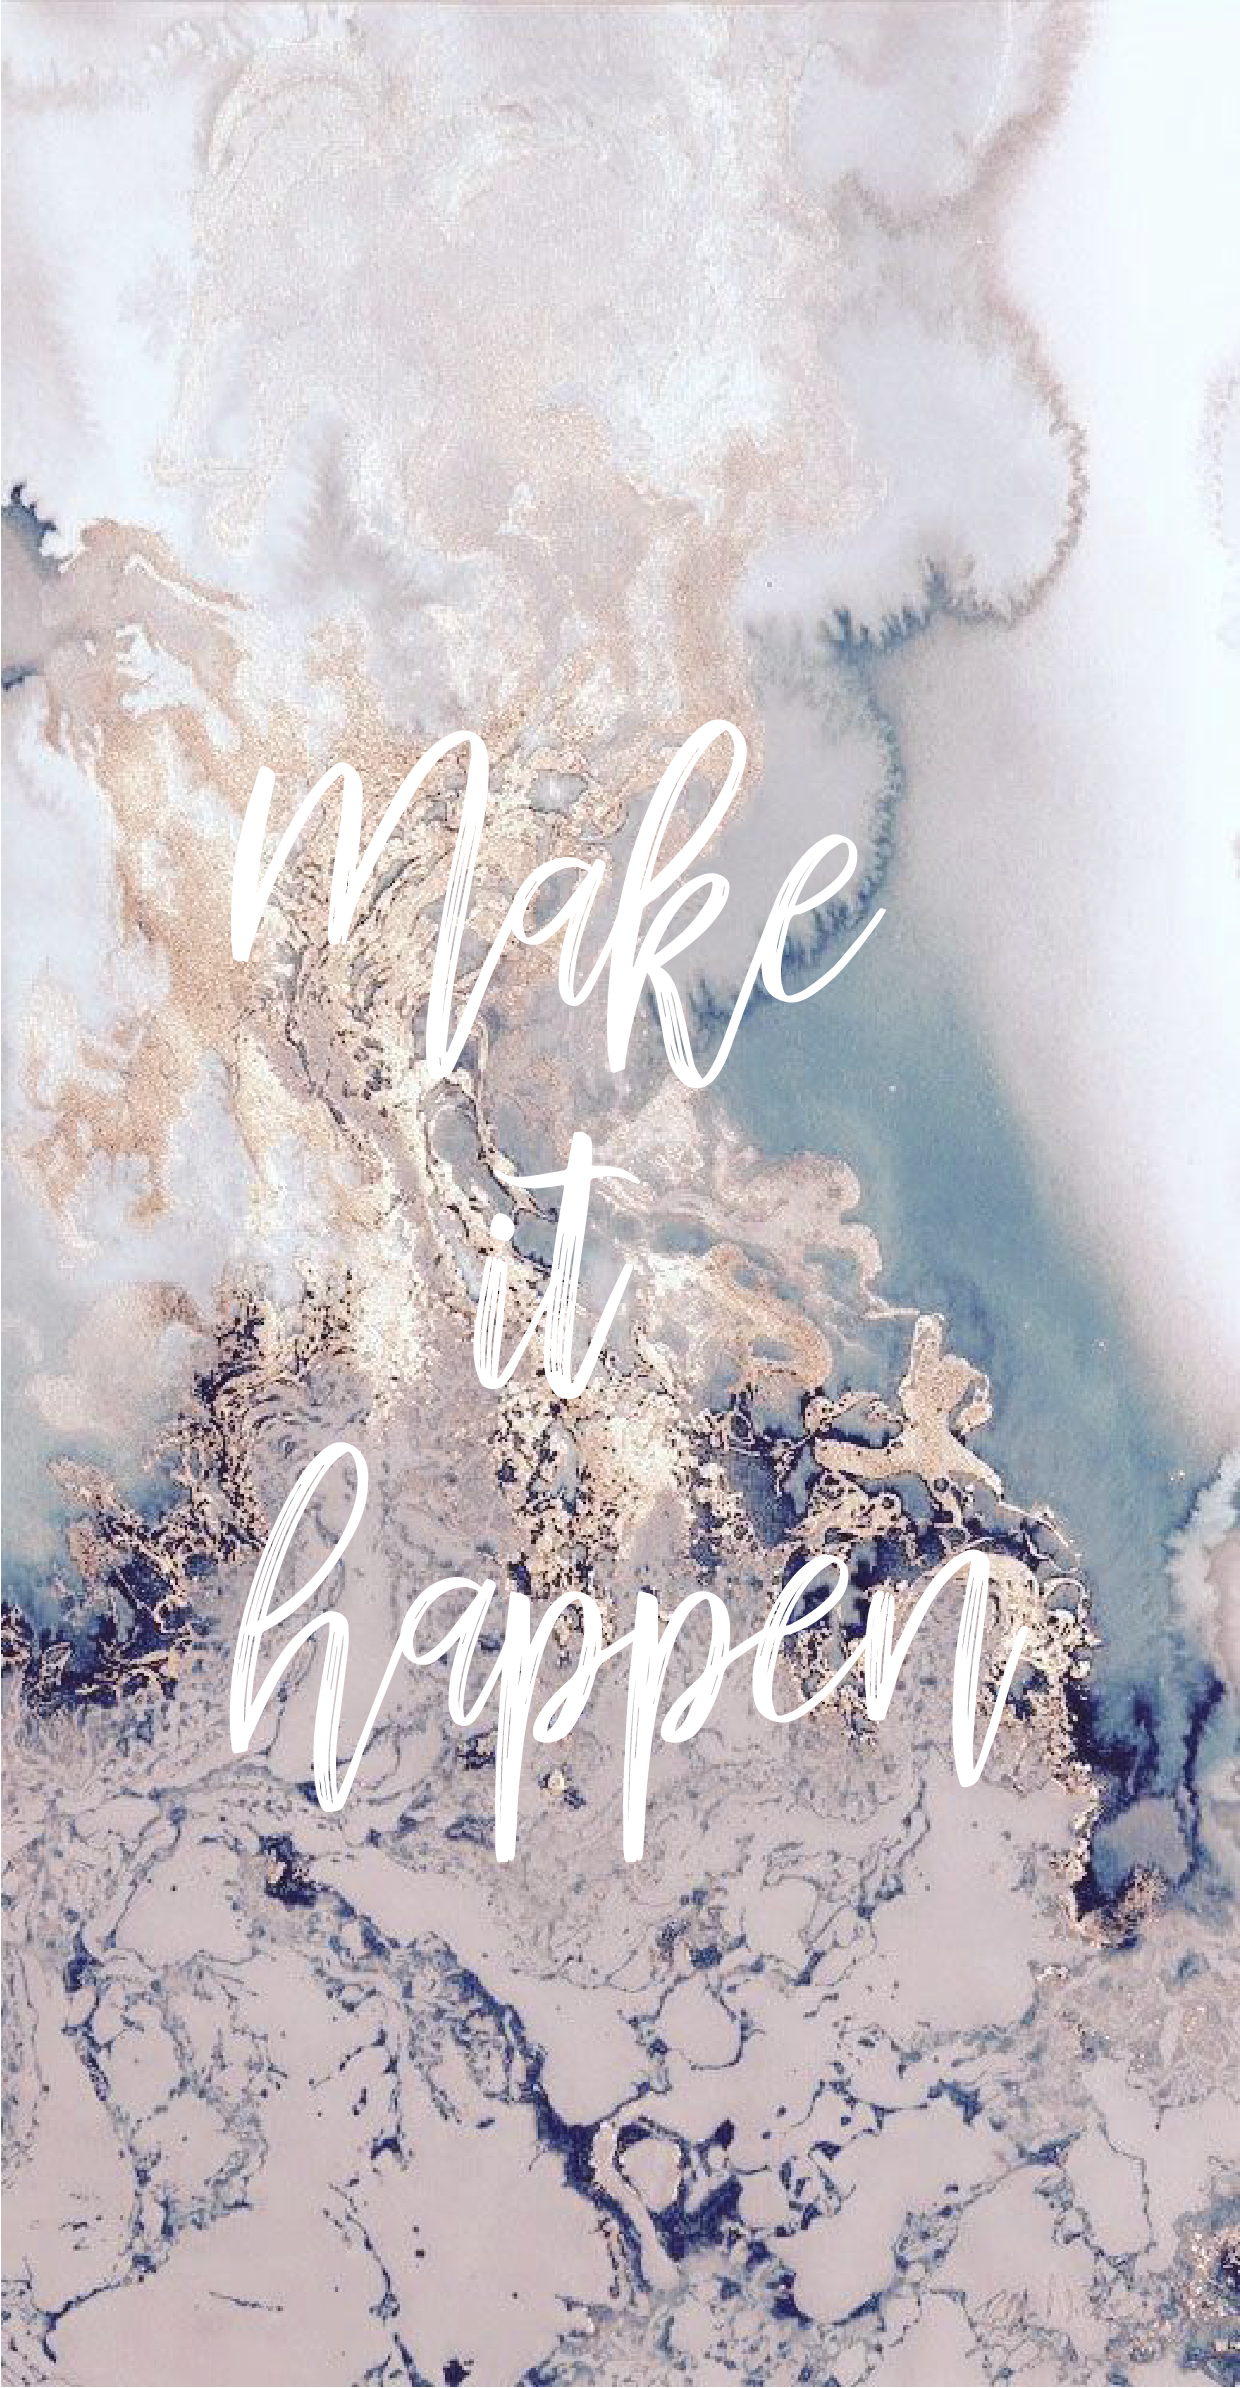 Marble Wallpaper Iphone Background Makeithappen Quotes Inspo Strong